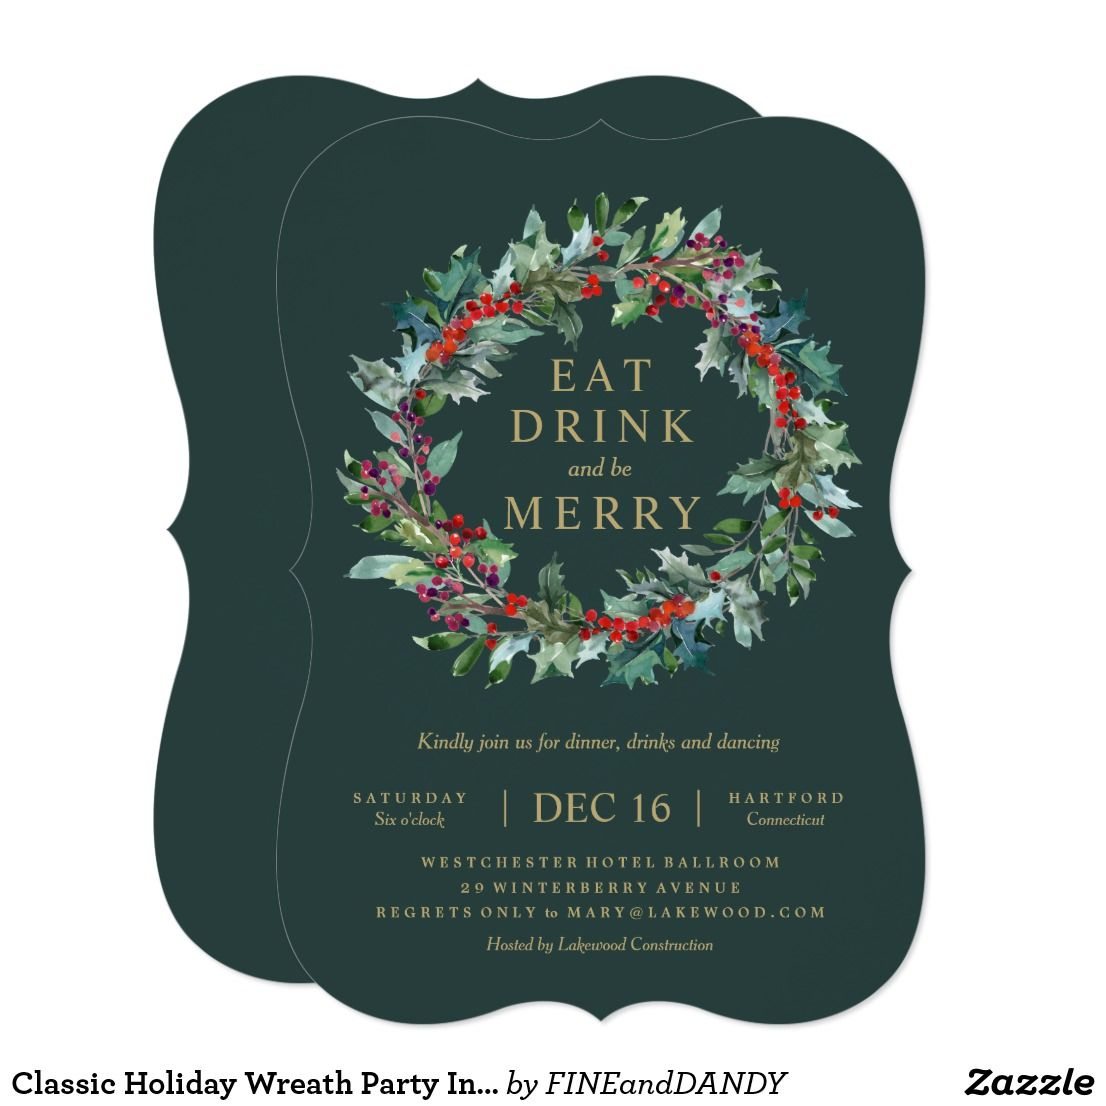 Classic Holiday Wreath Party Invitation  Holiday Wreaths Party